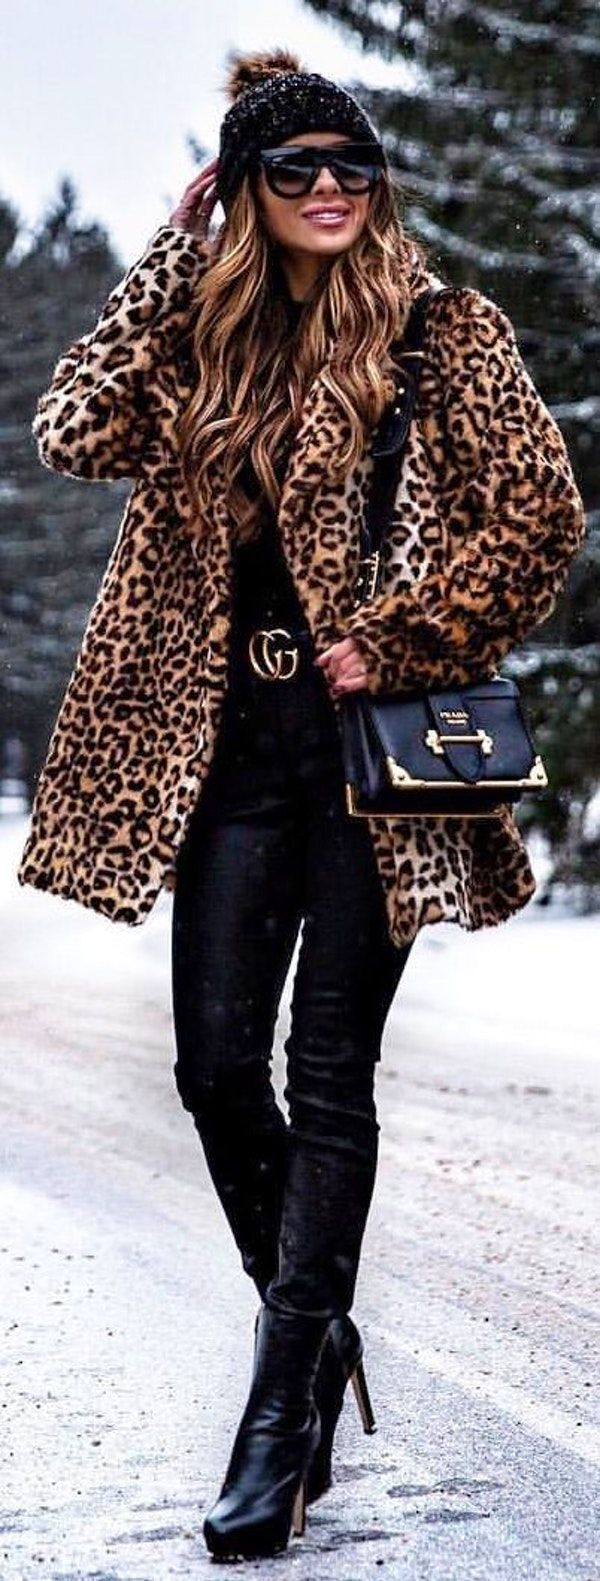 #winter #outfits black inner shirt with leopard print coat and black pants with black leather high heel boots outfit